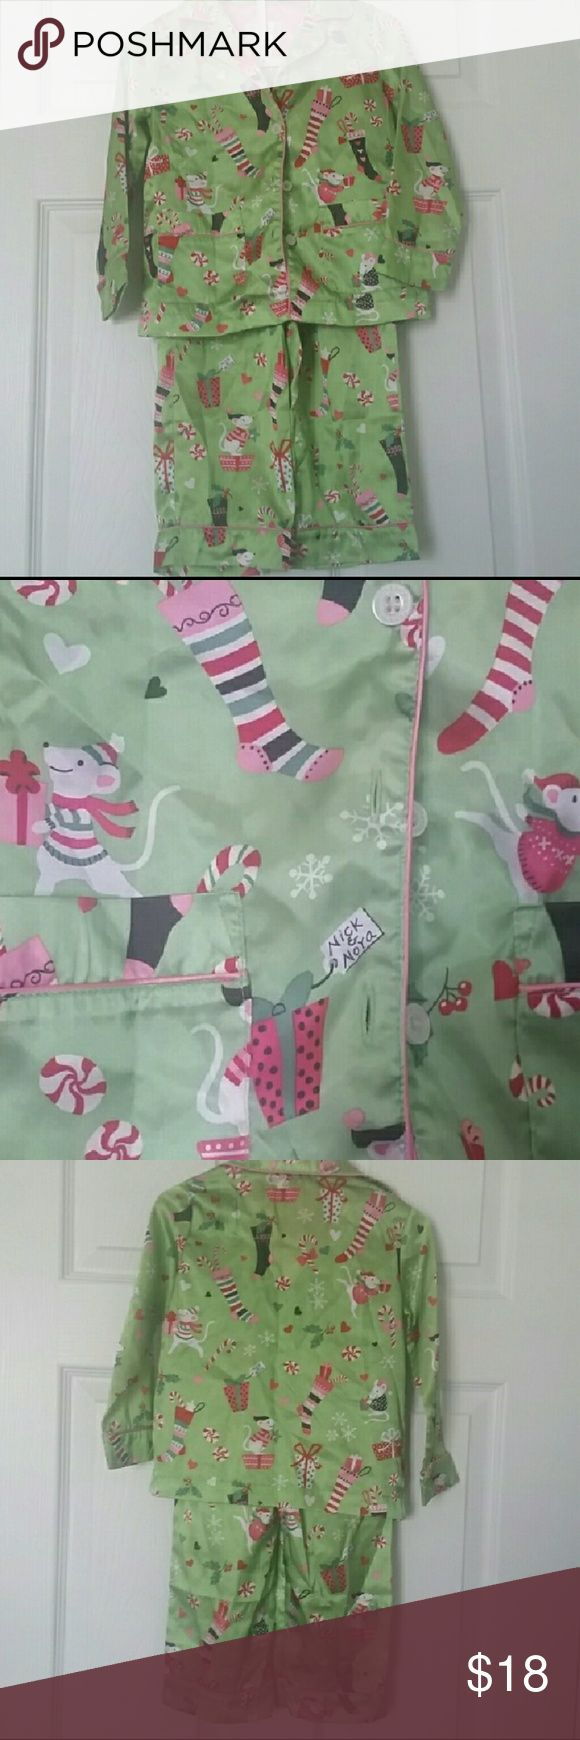 Christmas Pajamas Nick and Nora Adorable green and pink 2 piece Nick and Nora Christmas PJs. Stockings, peppermint, gifts...oh my!   The fabric is covered with sweet Christmas treats and mice characters.  Elastic waist pants and long sleeve button up top with pockets.  Satin feeling material and pink trim. Nick and Nora Pajamas Pajama Sets